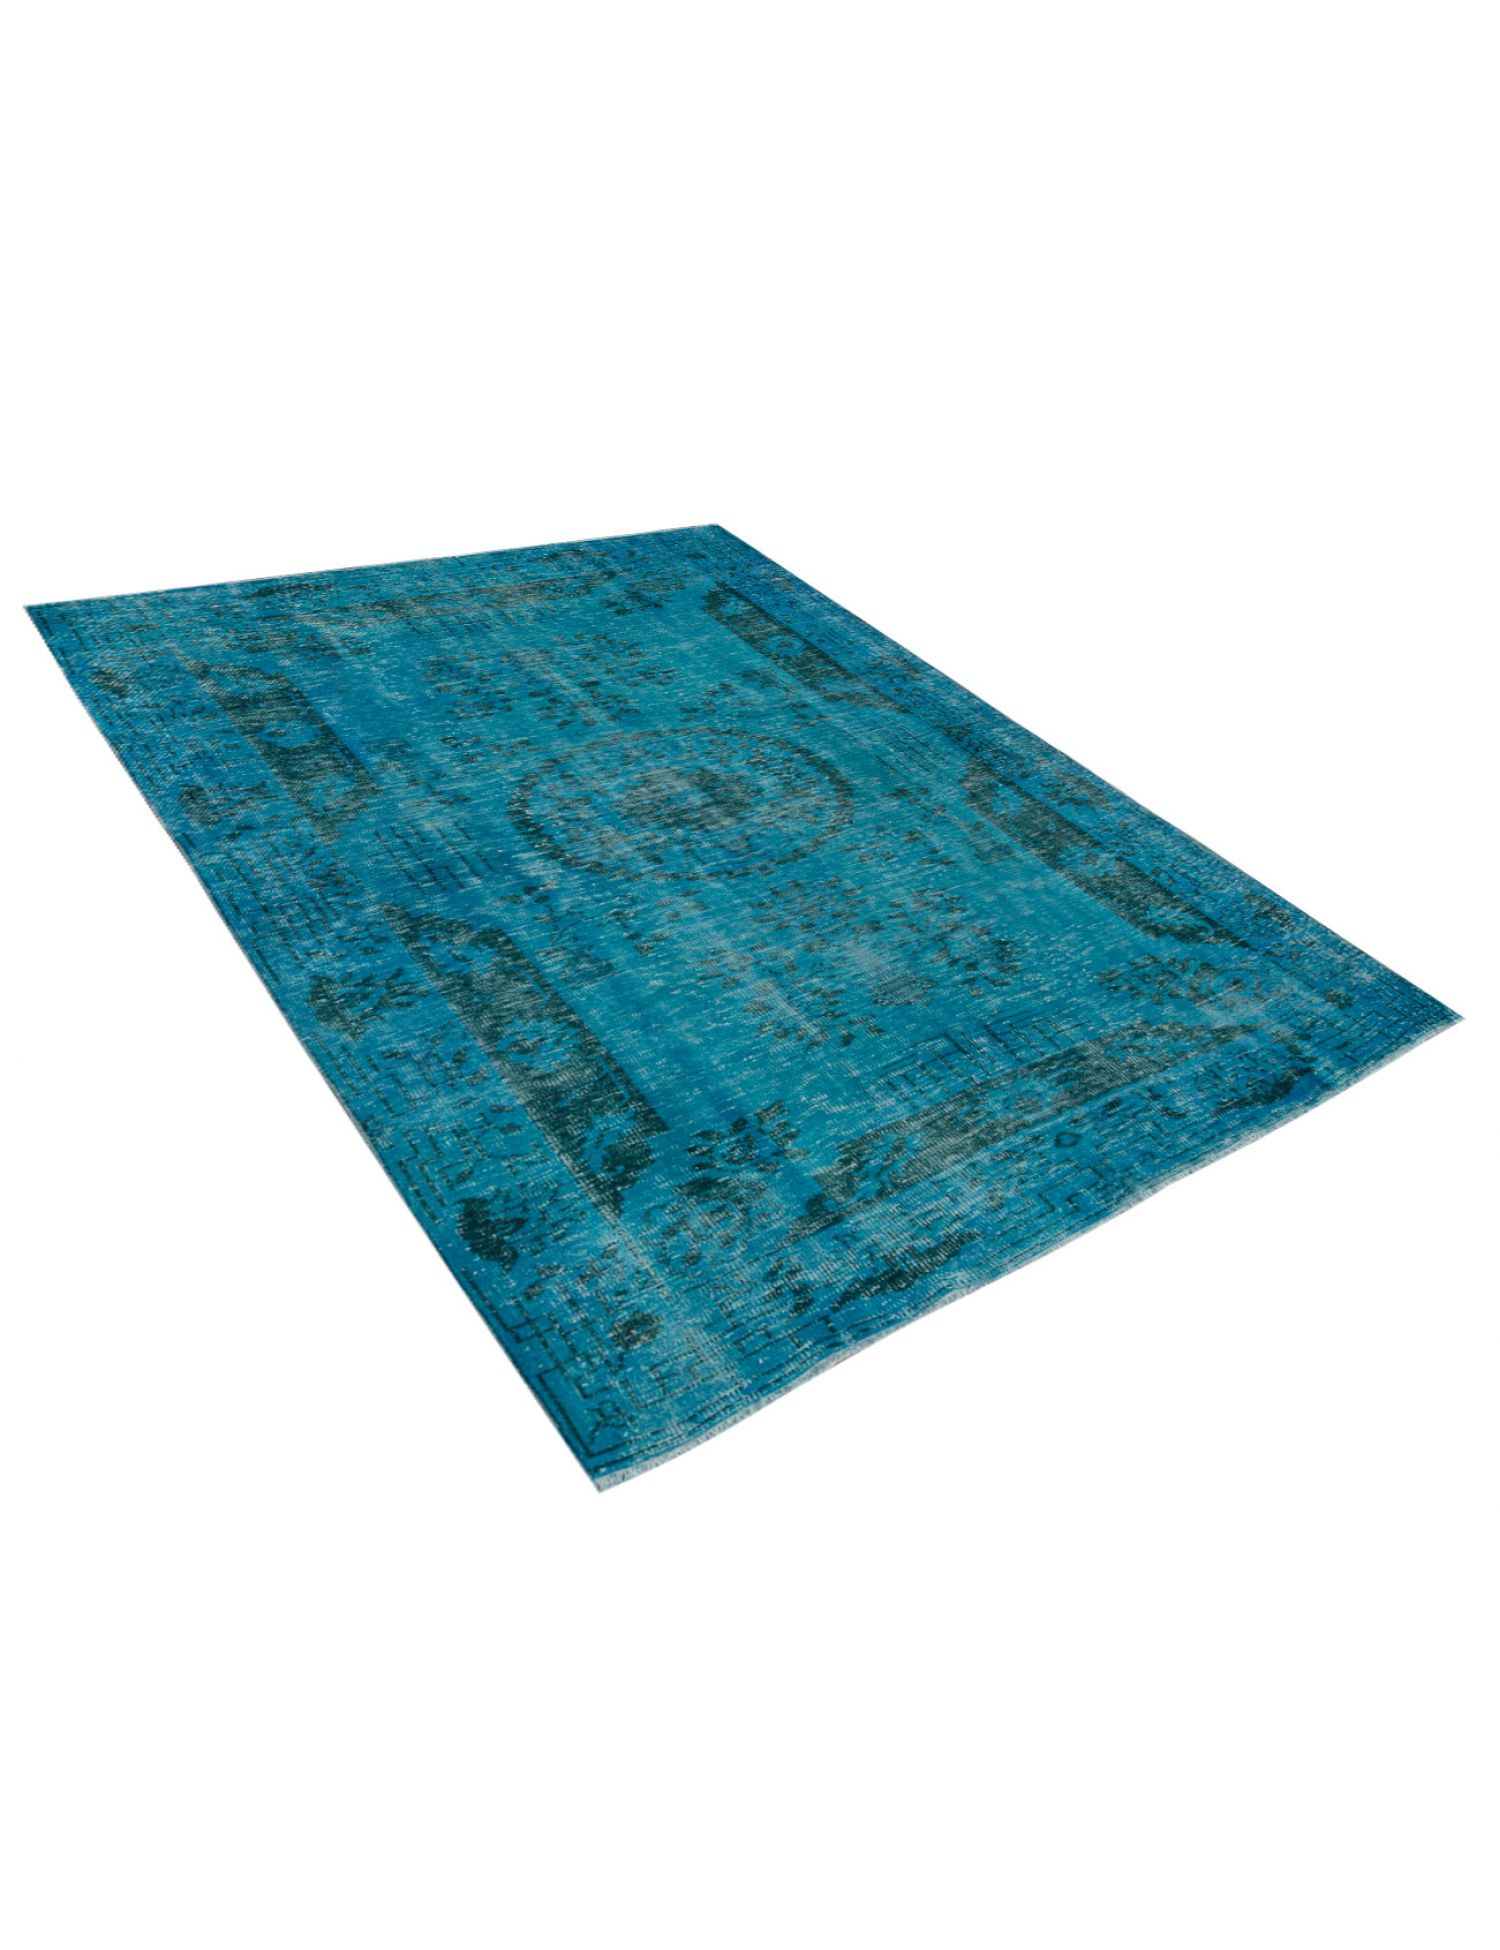 Vintage Carpet  blue <br/>275 x 188 cm